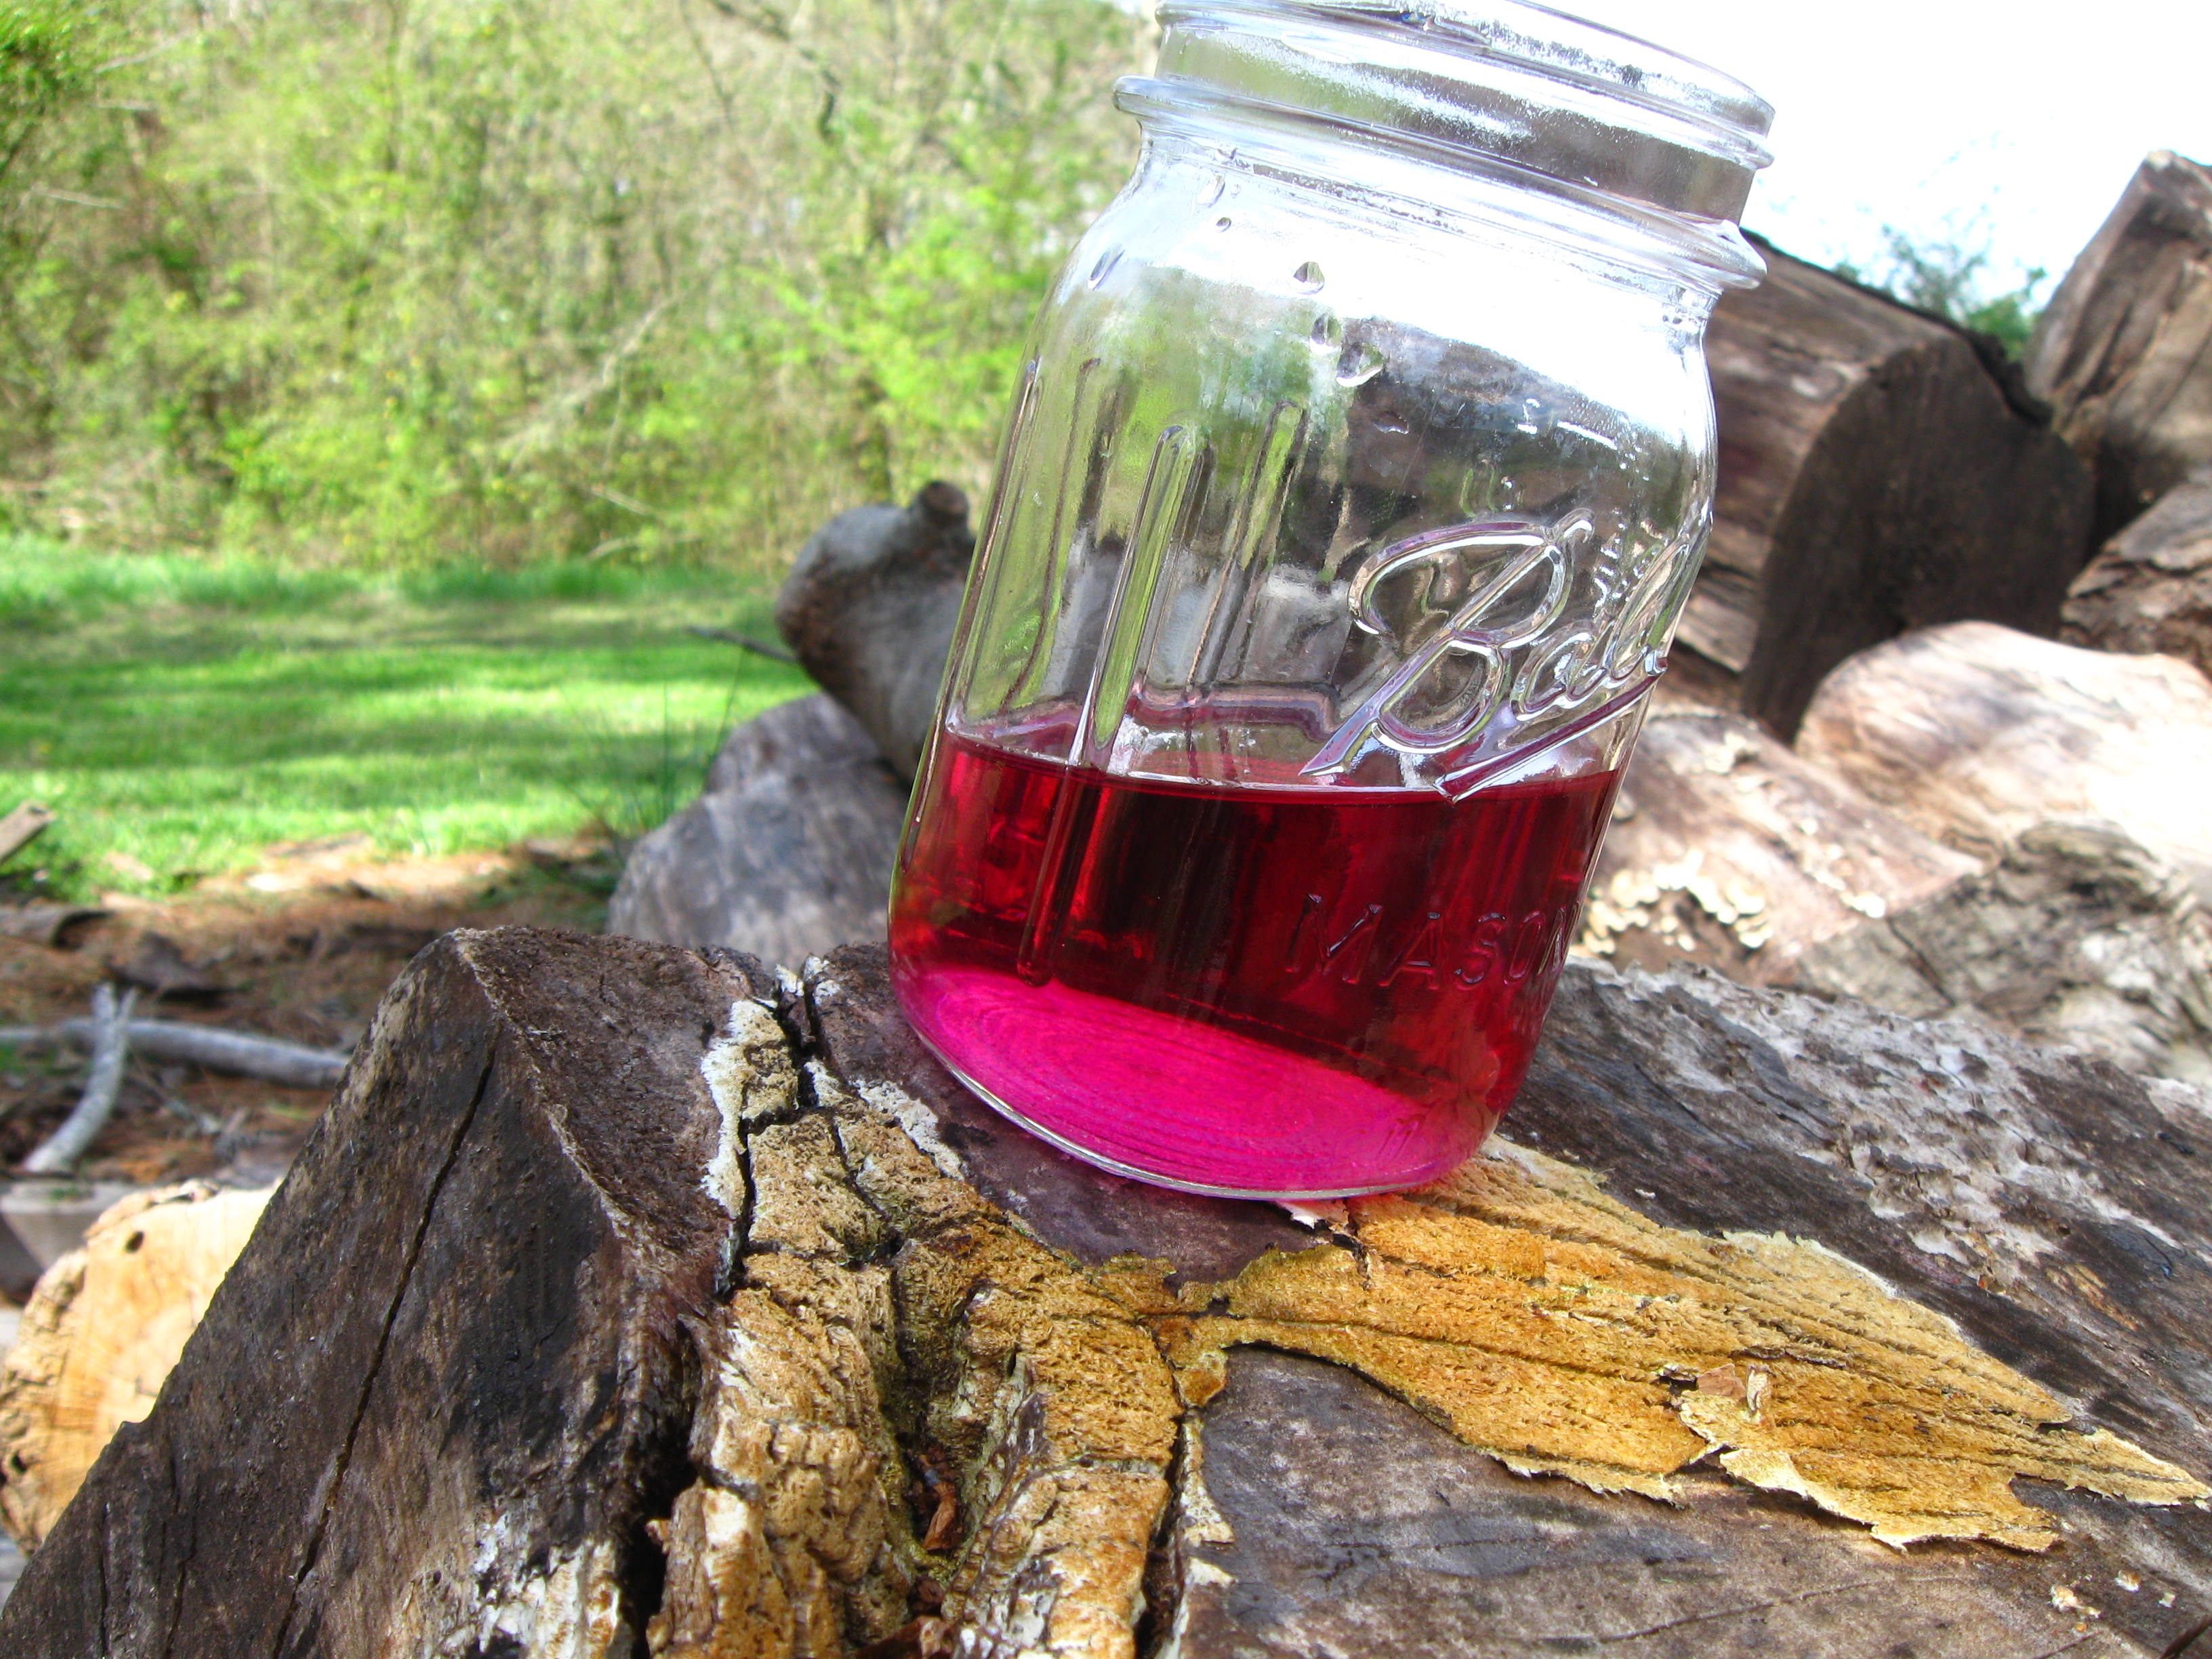 An infused vinegar made with sweet violets is a stunning magenta colored potion.